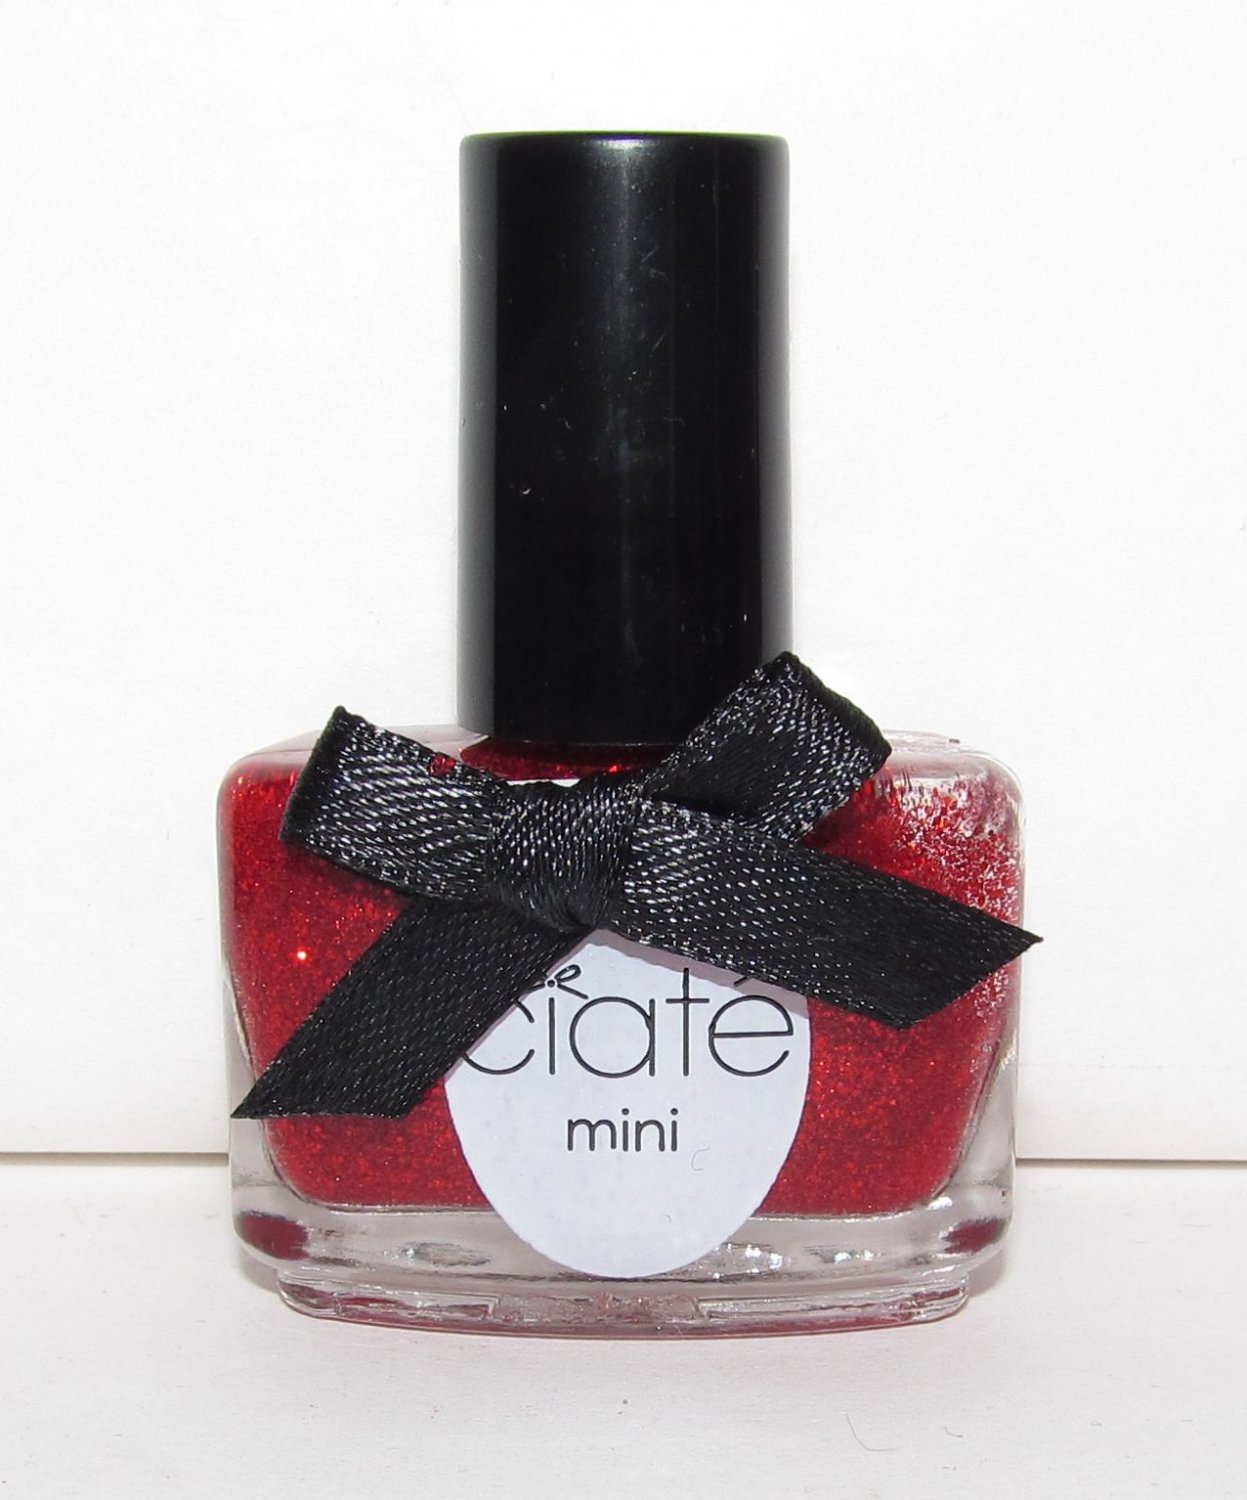 Ciate Nail Polish - Enchanted Rose  - mini bottle NEW Rare